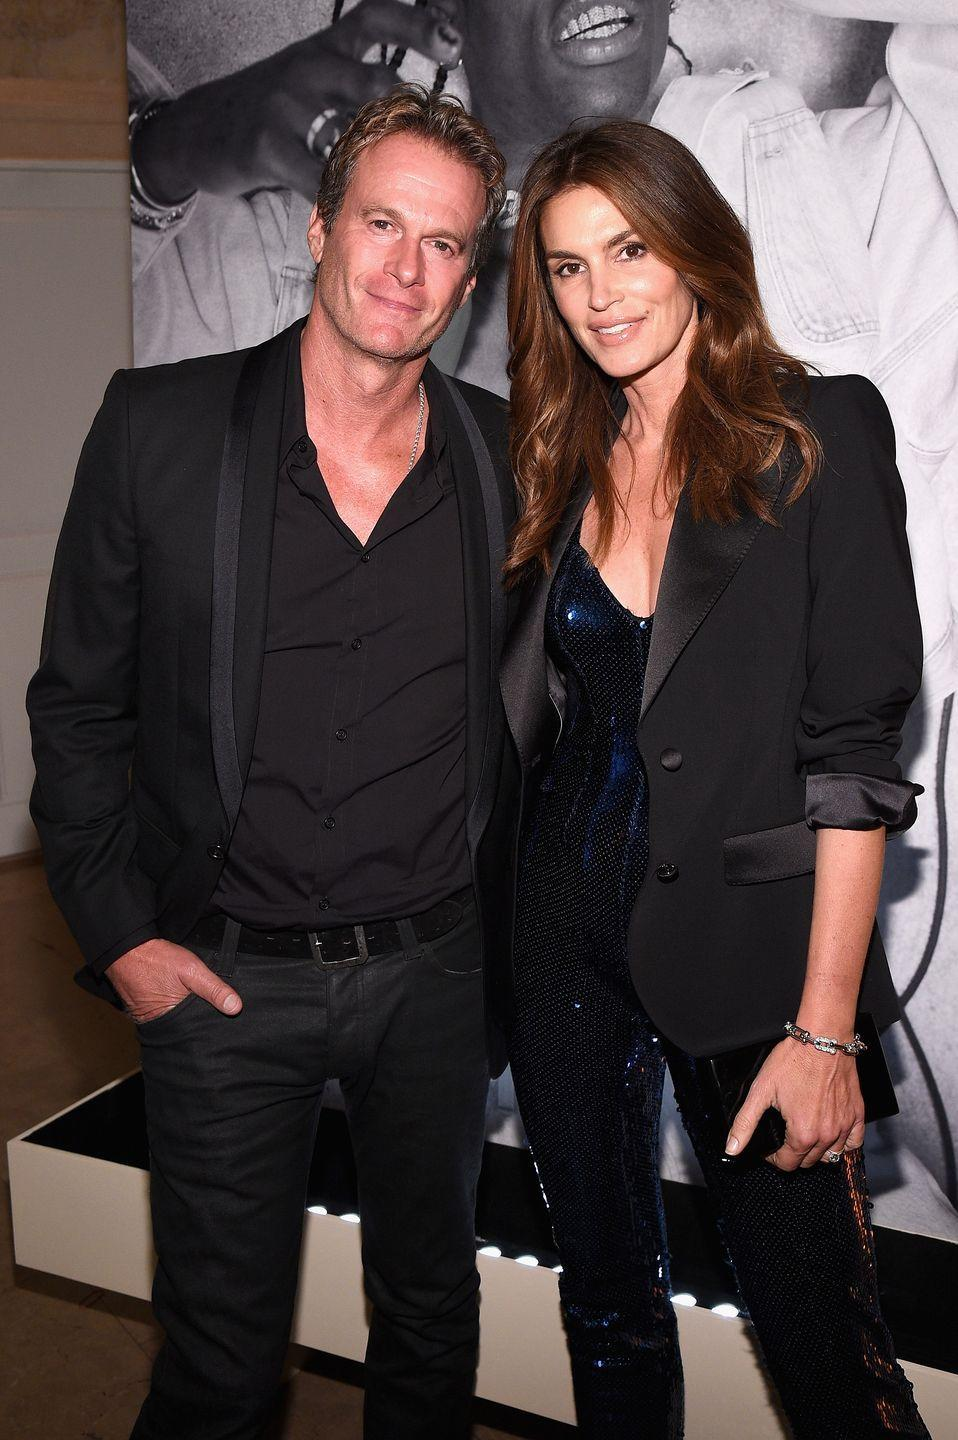 """<p>The supermodel has her agent, Michael Gruber, to thank for connecting her with her husband, Rande Gerber. When Gruber was getting married, he suggested that Crawford and Gerber be each other's dates to his big day. </p><p>""""We decided to meet the night before and get to know each other,"""" <a href=""""http://people.com/archive/cover-story-hello-love-vol-58-no-3/"""" rel=""""nofollow noopener"""" target=""""_blank"""" data-ylk=""""slk:Gerber told People"""" class=""""link rapid-noclick-resp"""">Gerber told <em>People</em></a>. """"I was surprised at how cool and down-to-earth she was.""""</p>"""